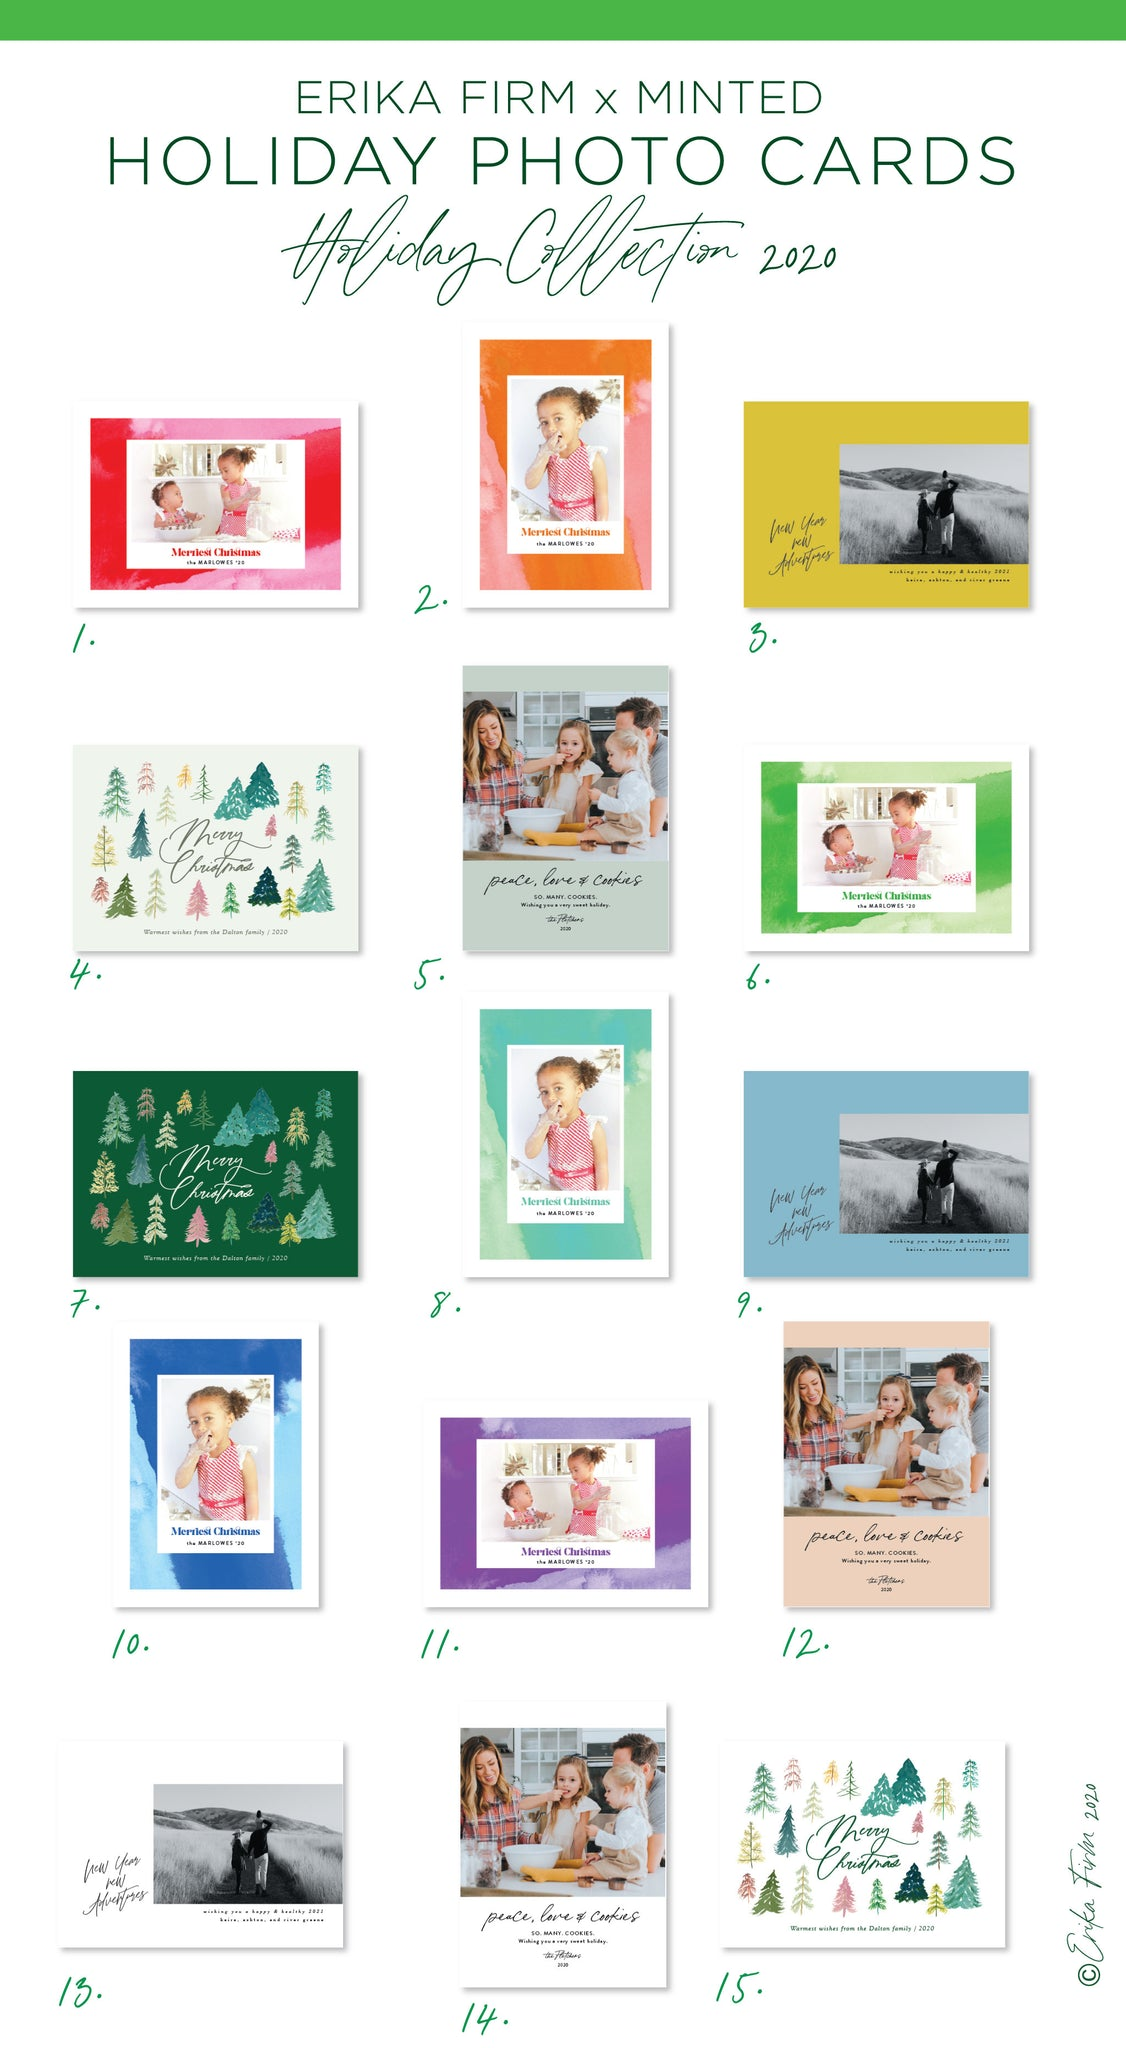 Erika Firm x Minted Holiday 2020 Photo Card Collection